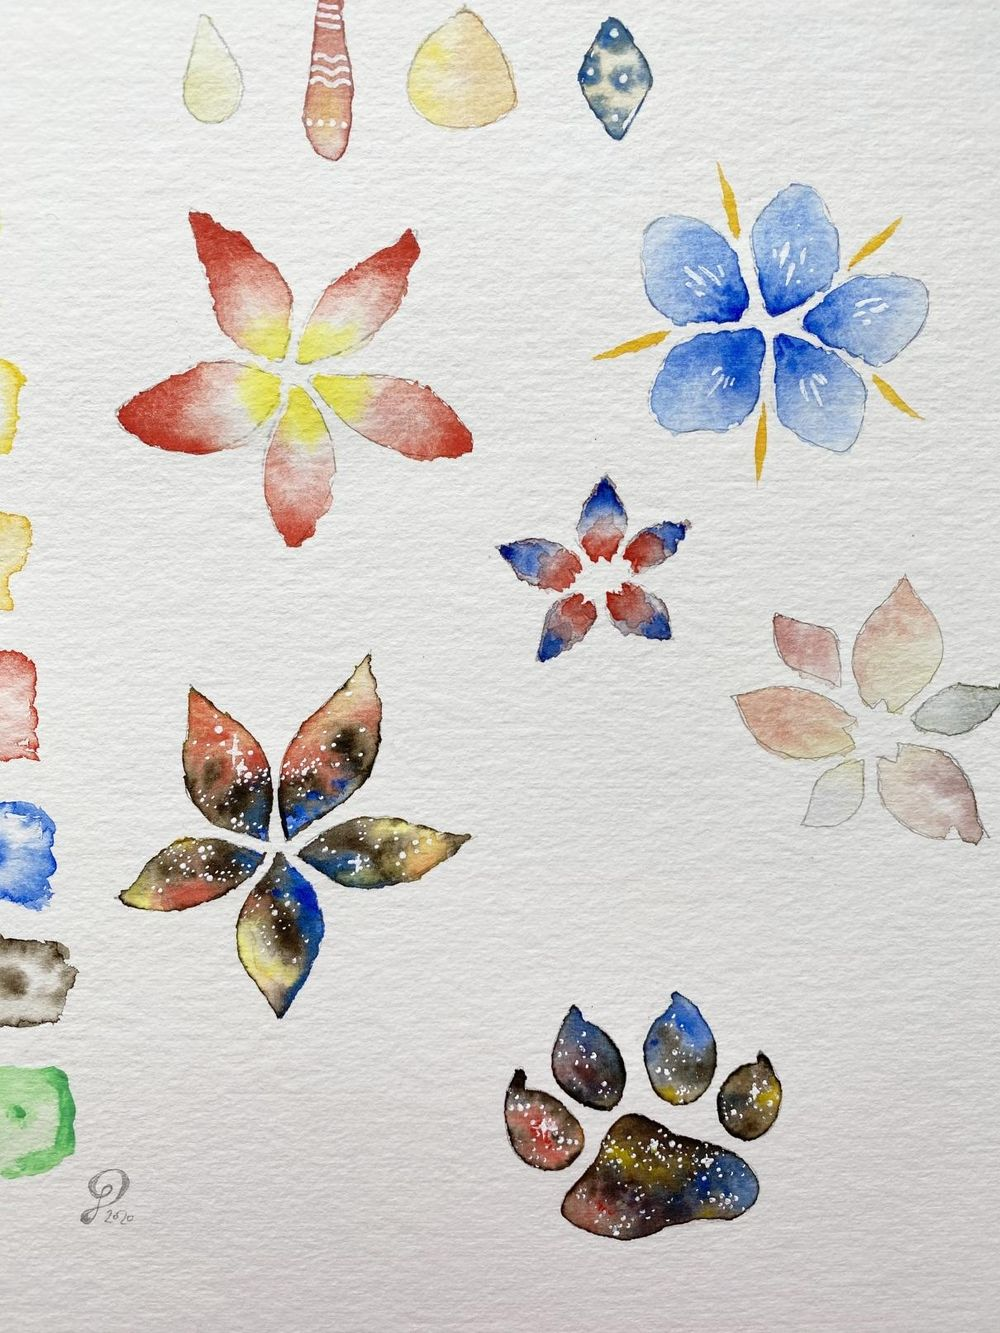 Watercolor Flowers - so much fun and cool effects! - image 5 - student project